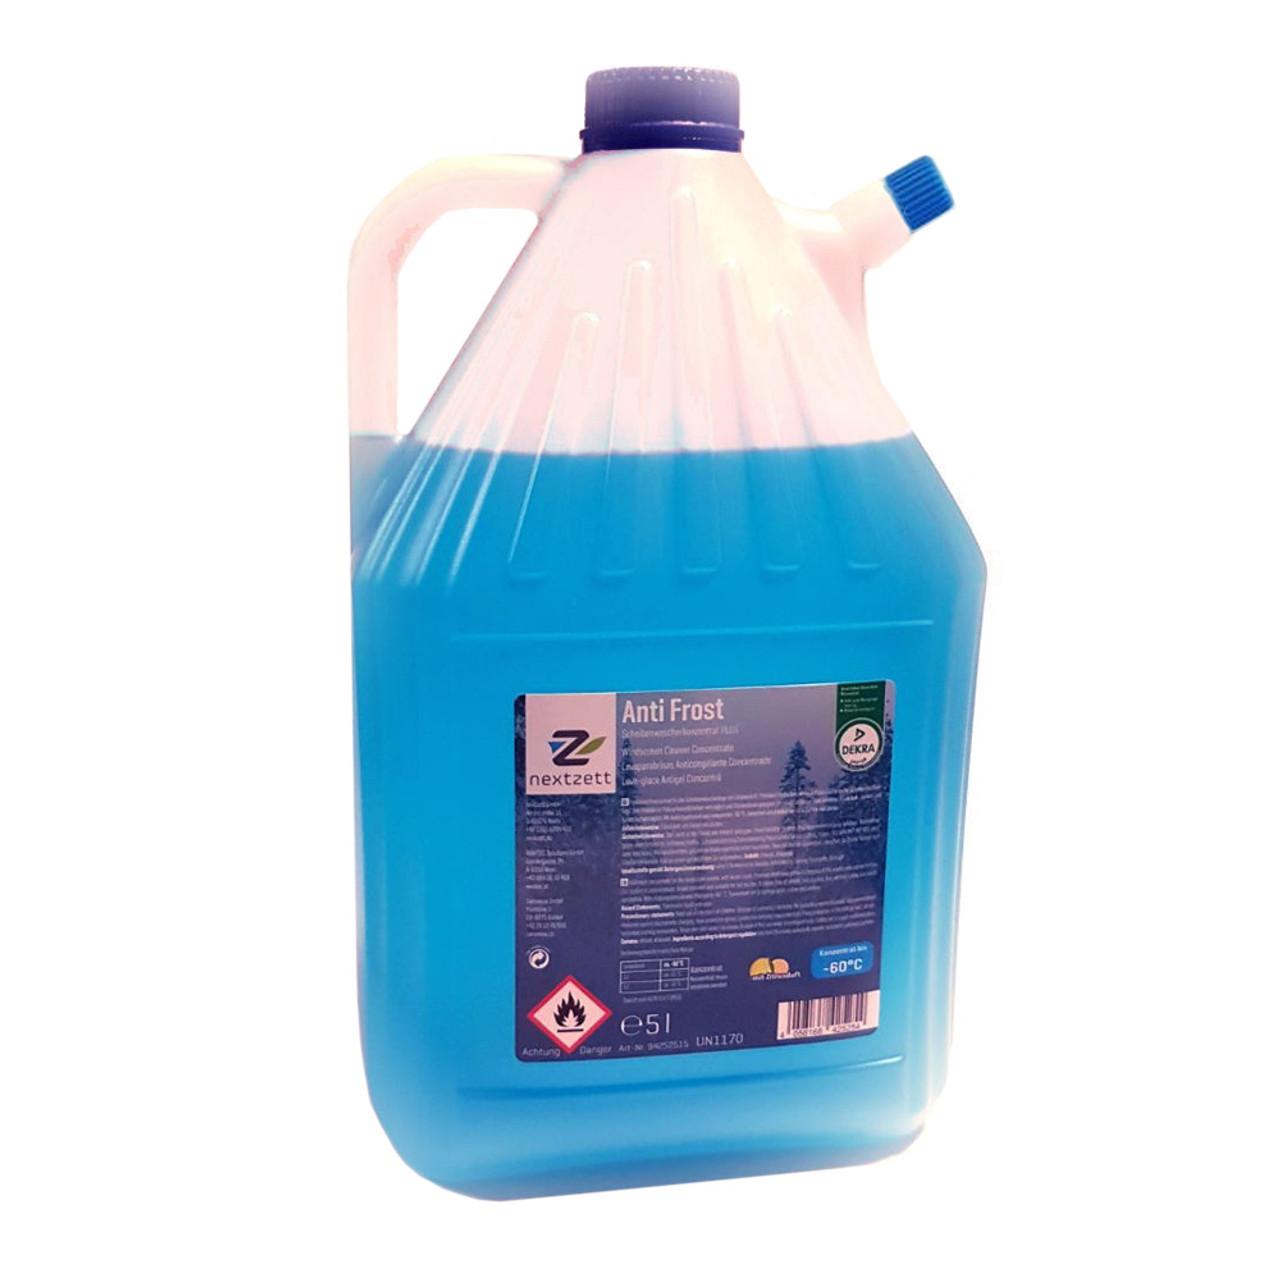 Superb Anti Frost Windshield Washer Fluid Concentrate 169 Oz 5 Liter Uwap Interior Chair Design Uwaporg